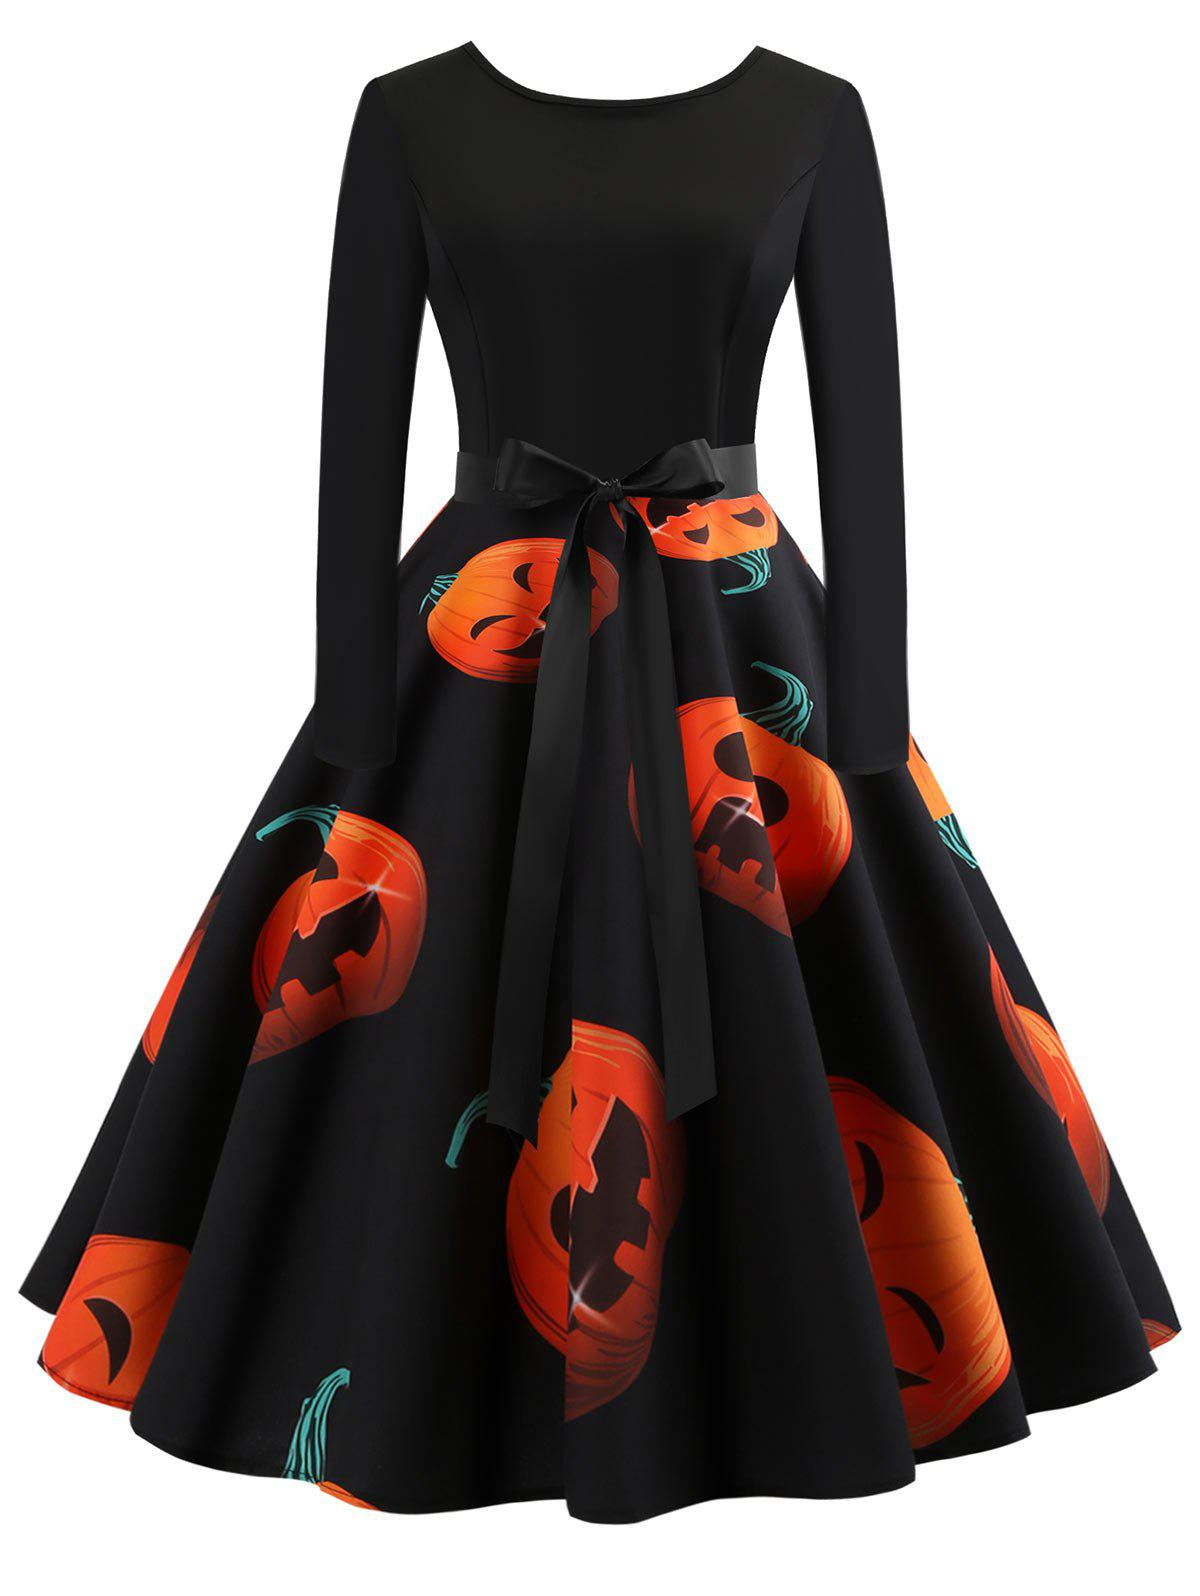 New Halloween Pumpkin Print Flare Dress